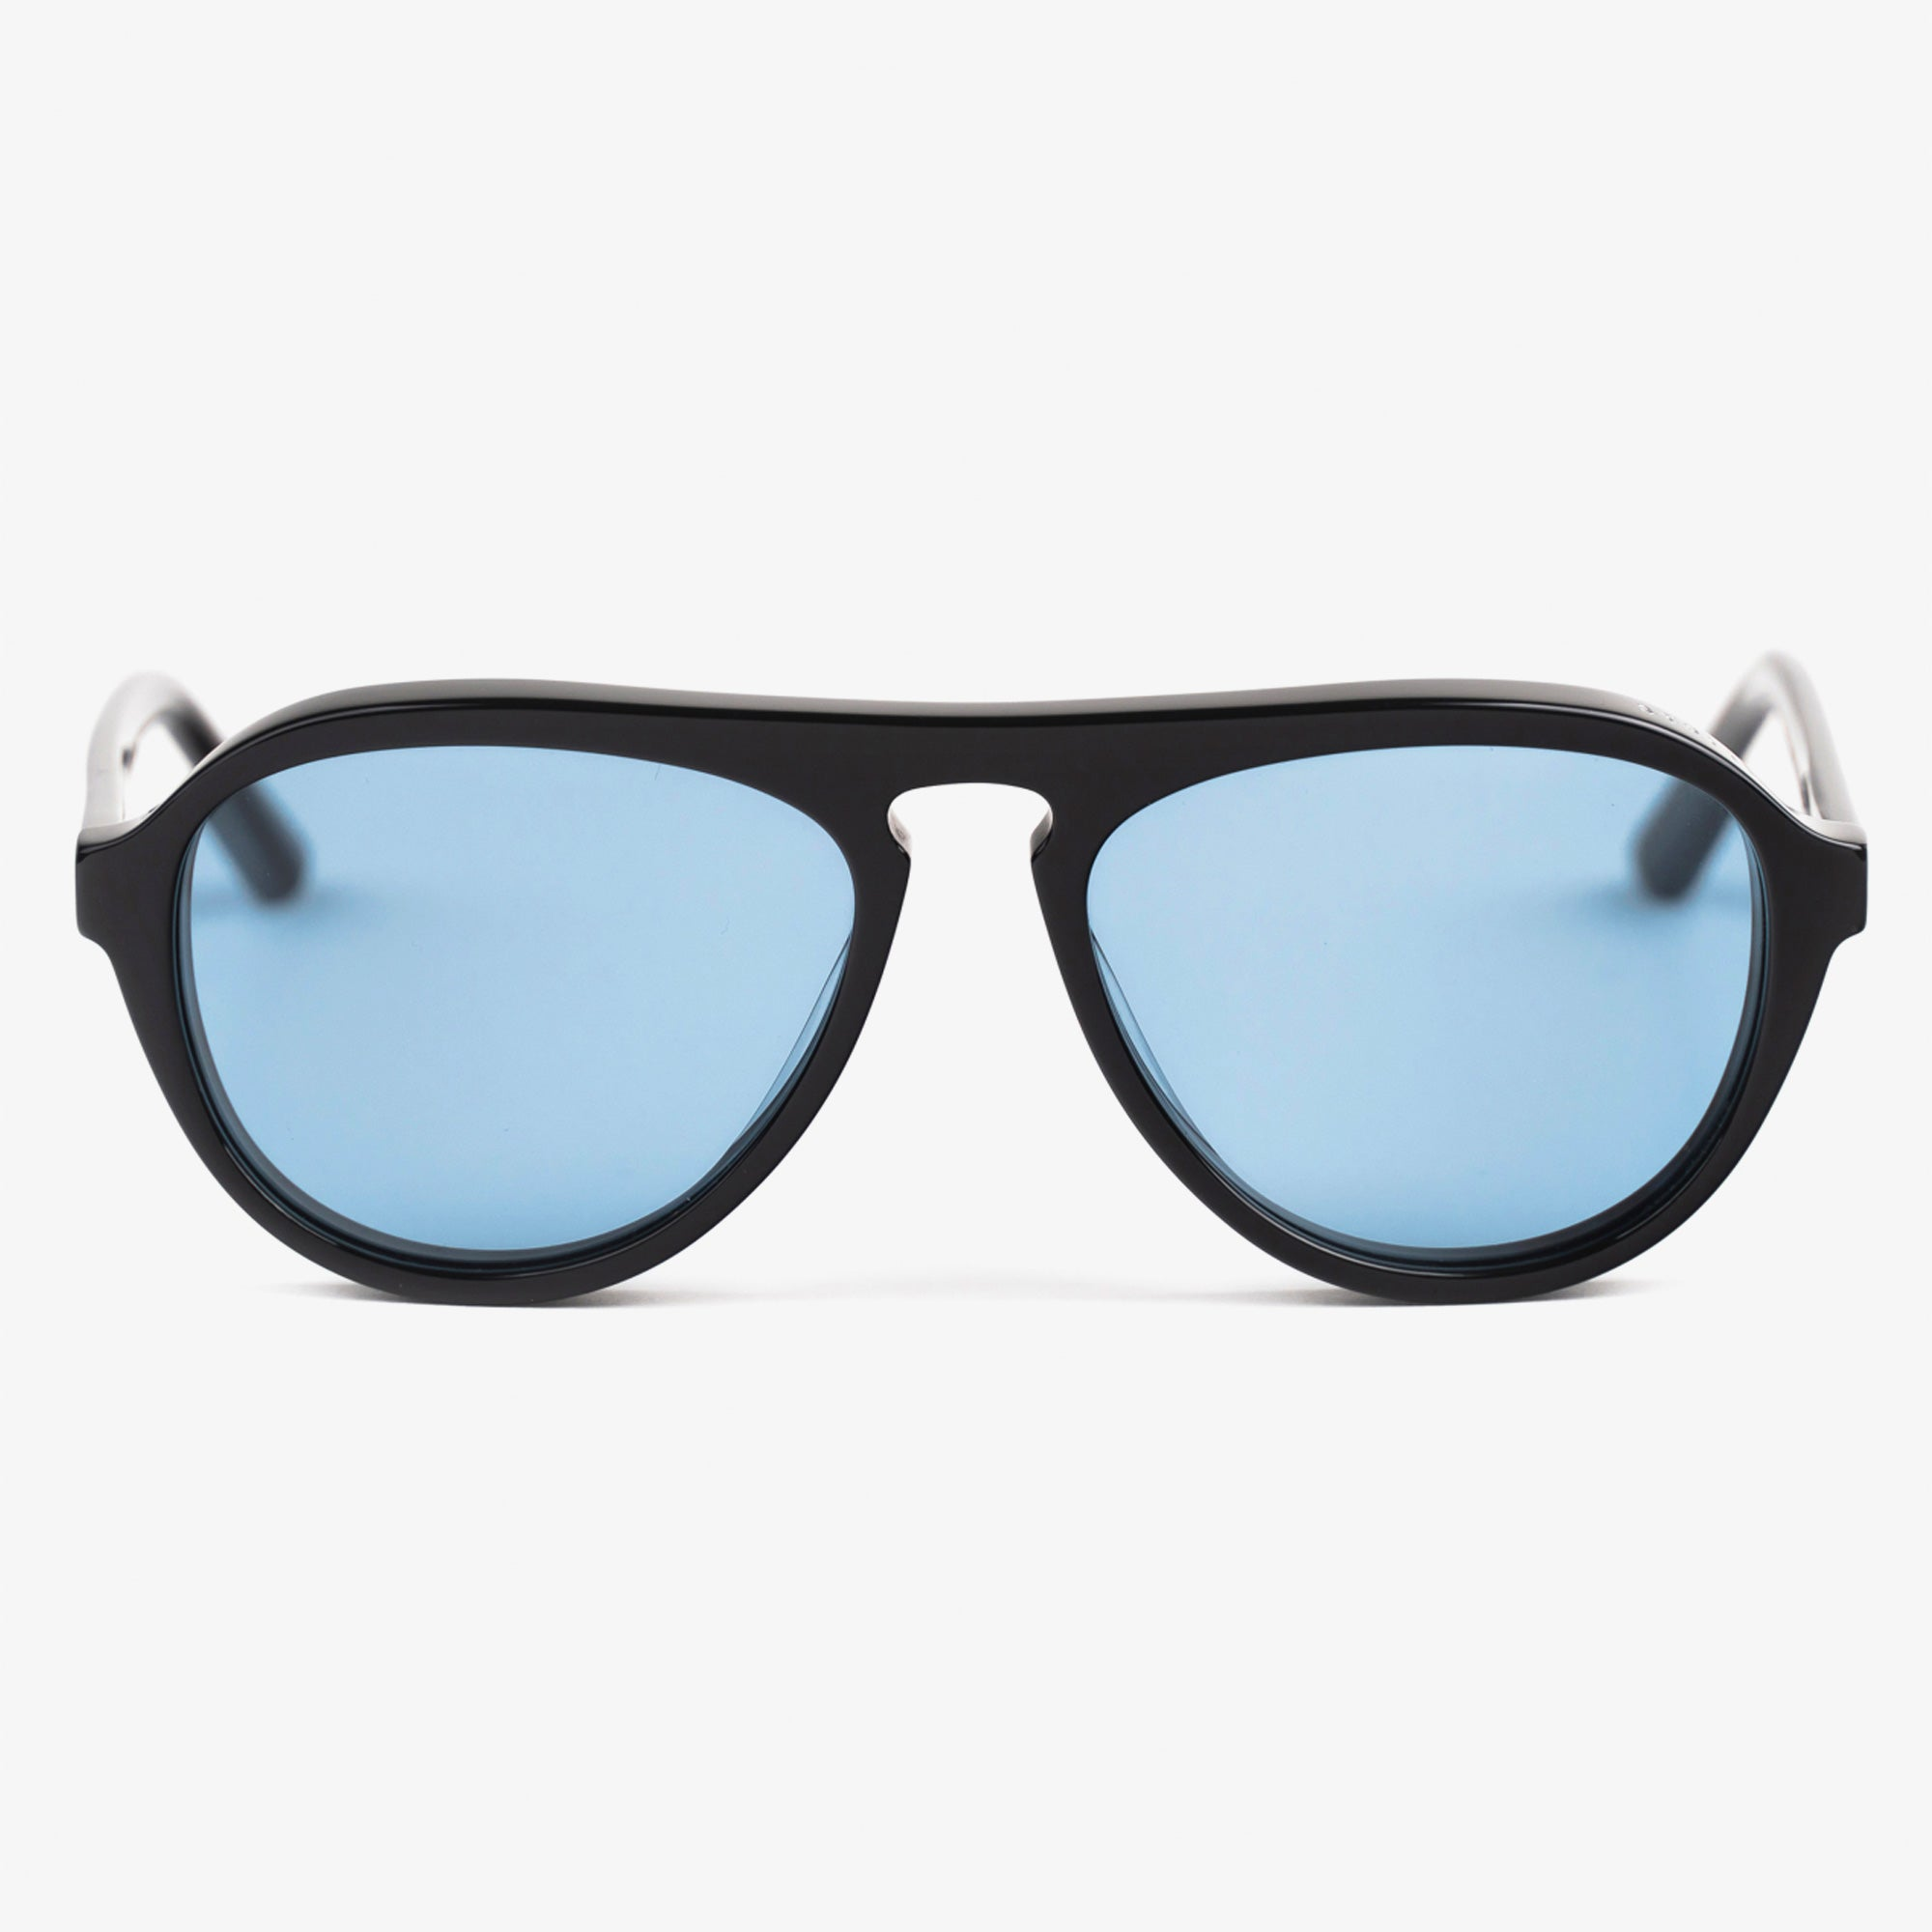 Vaanyard Illicit - Black Mono Gloss / Light Blue 1